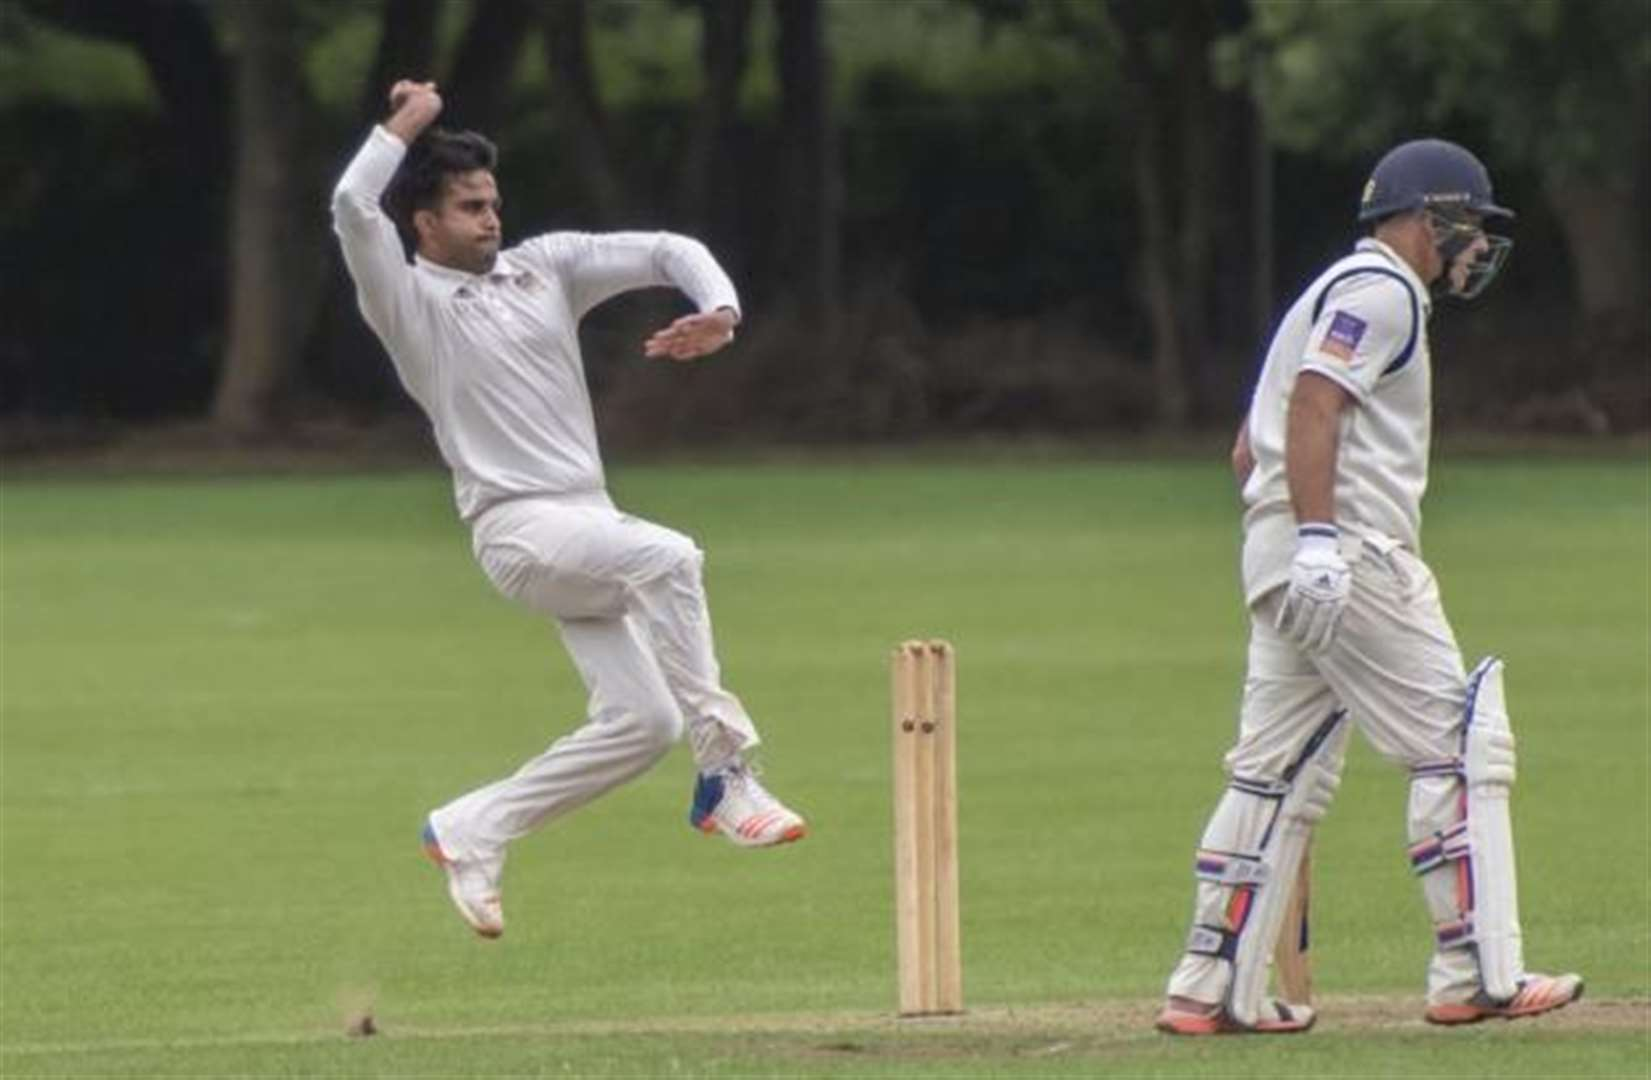 Raj Singh is in full swing for Cambridge Granta in a big to be one of the league's top bowlers